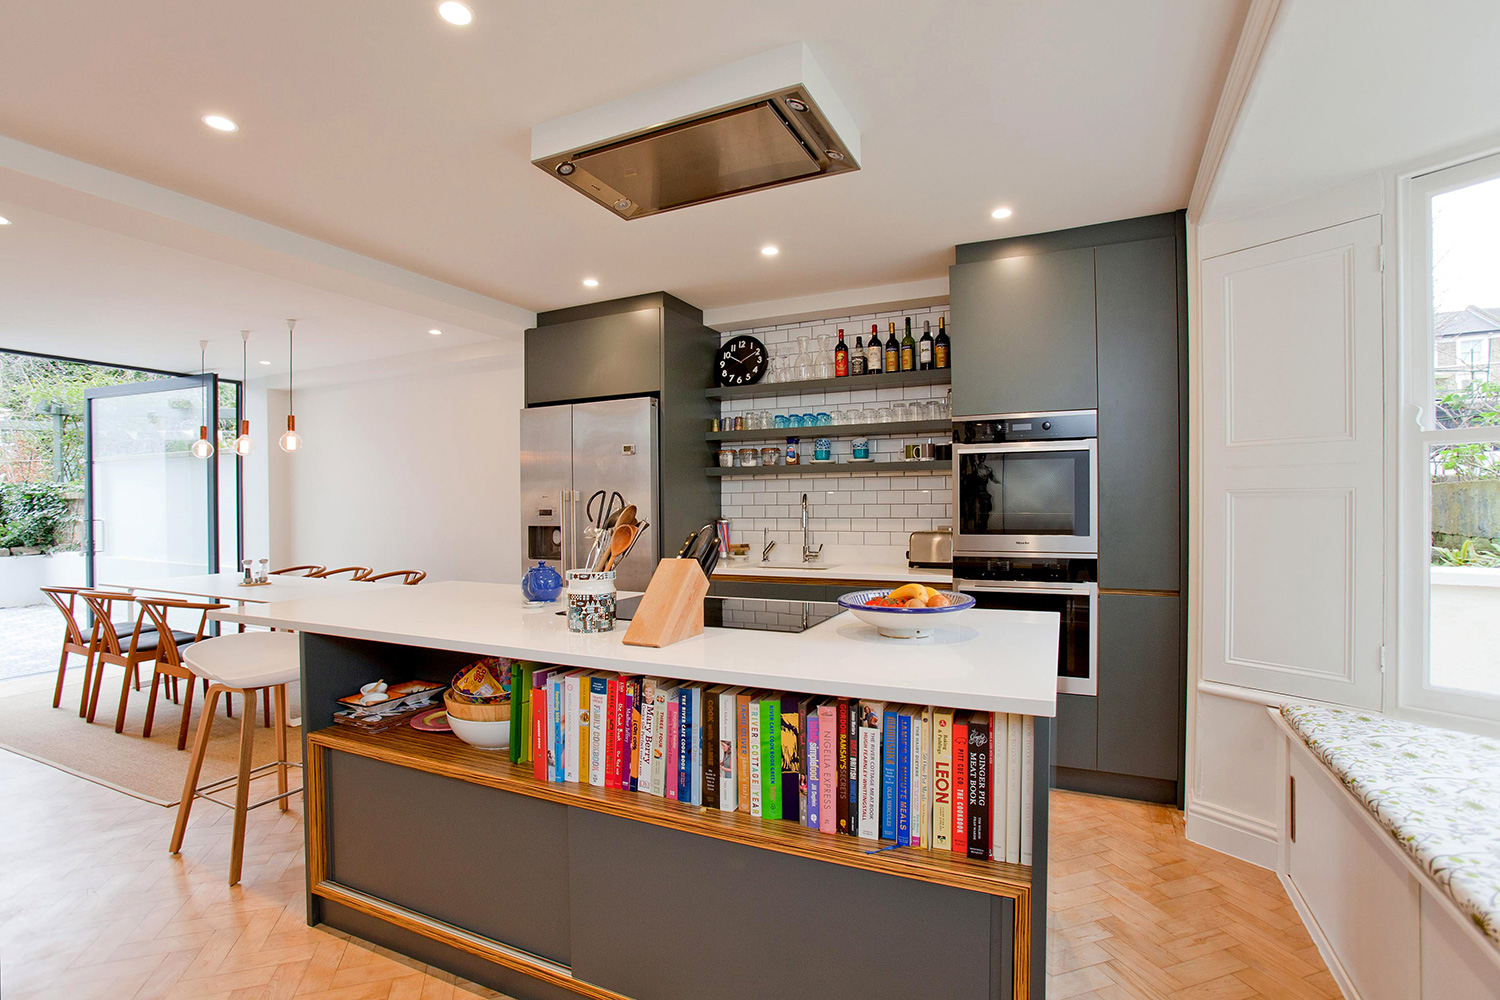 Penshurst Road's kitchen